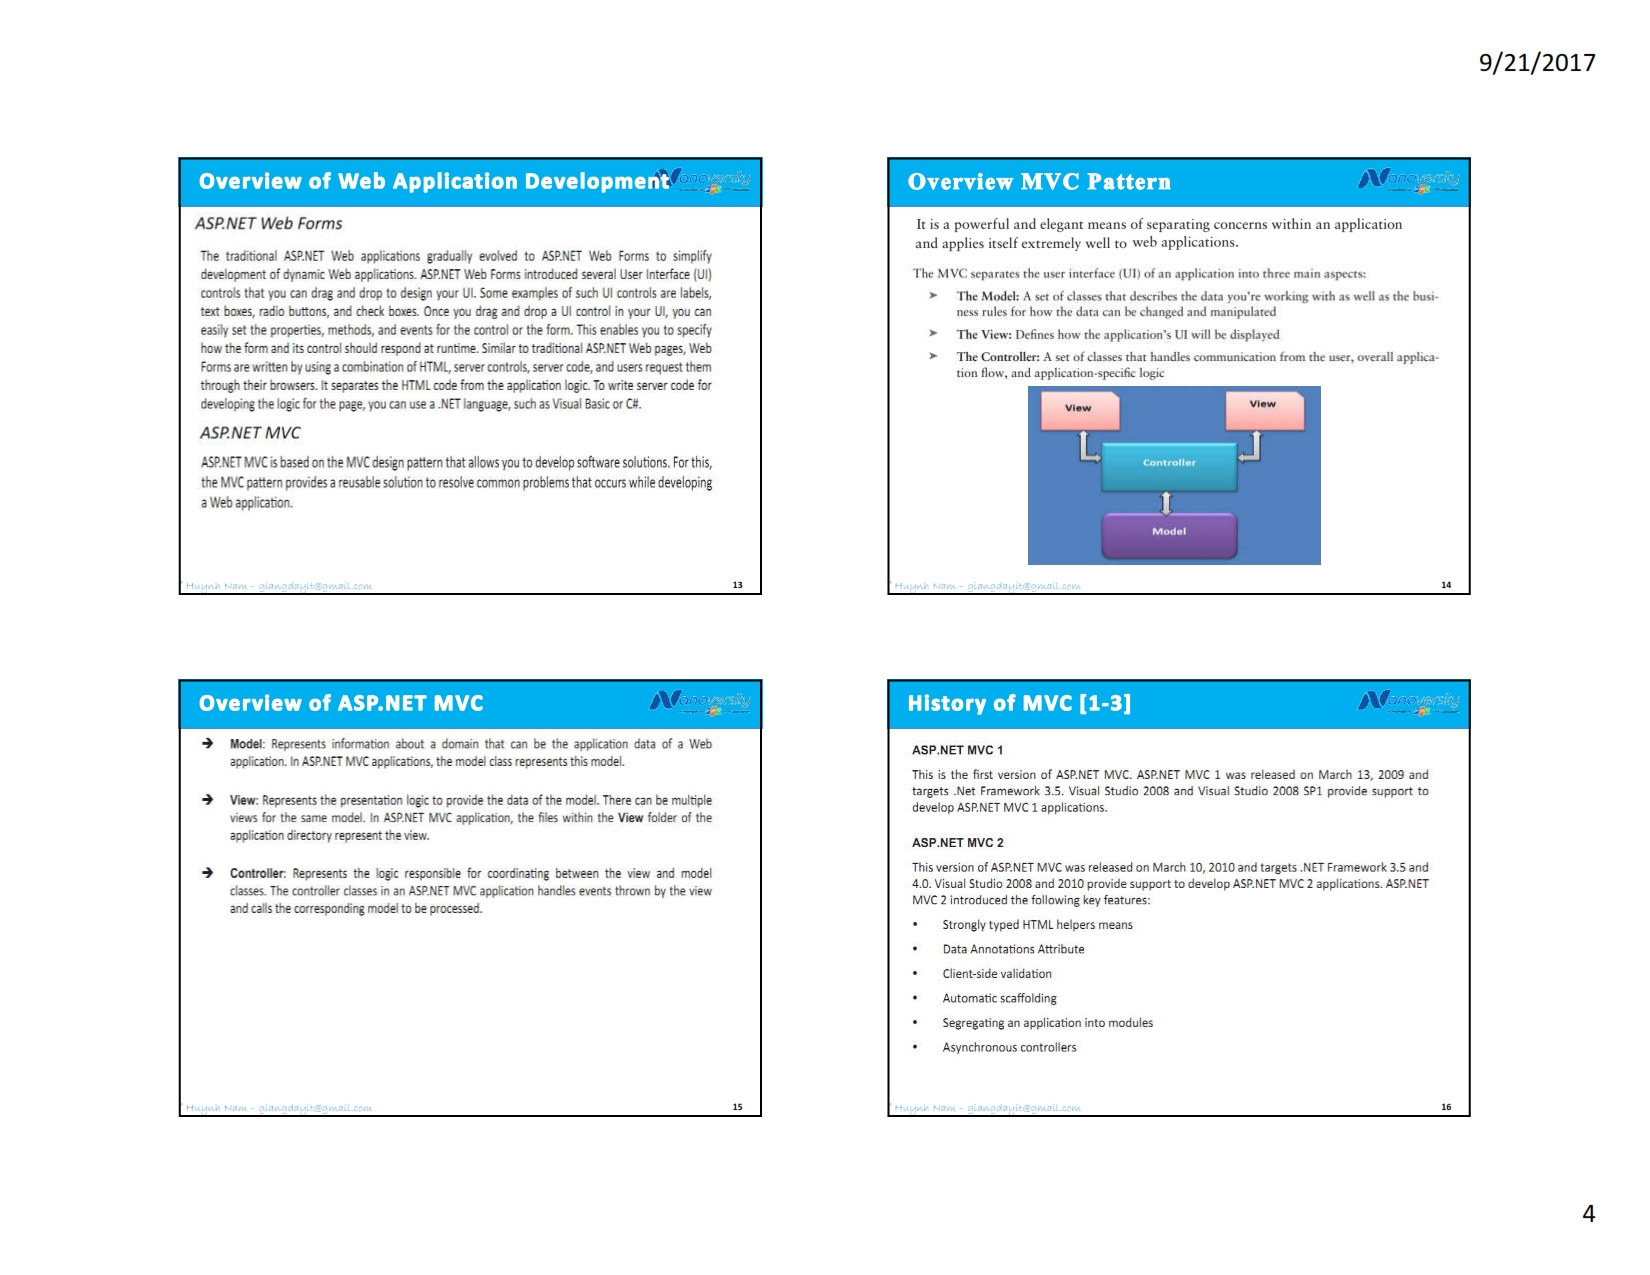 can-ban-tao-project-controller-view-razor-session-Intro-trong-mvc6-004.jpg